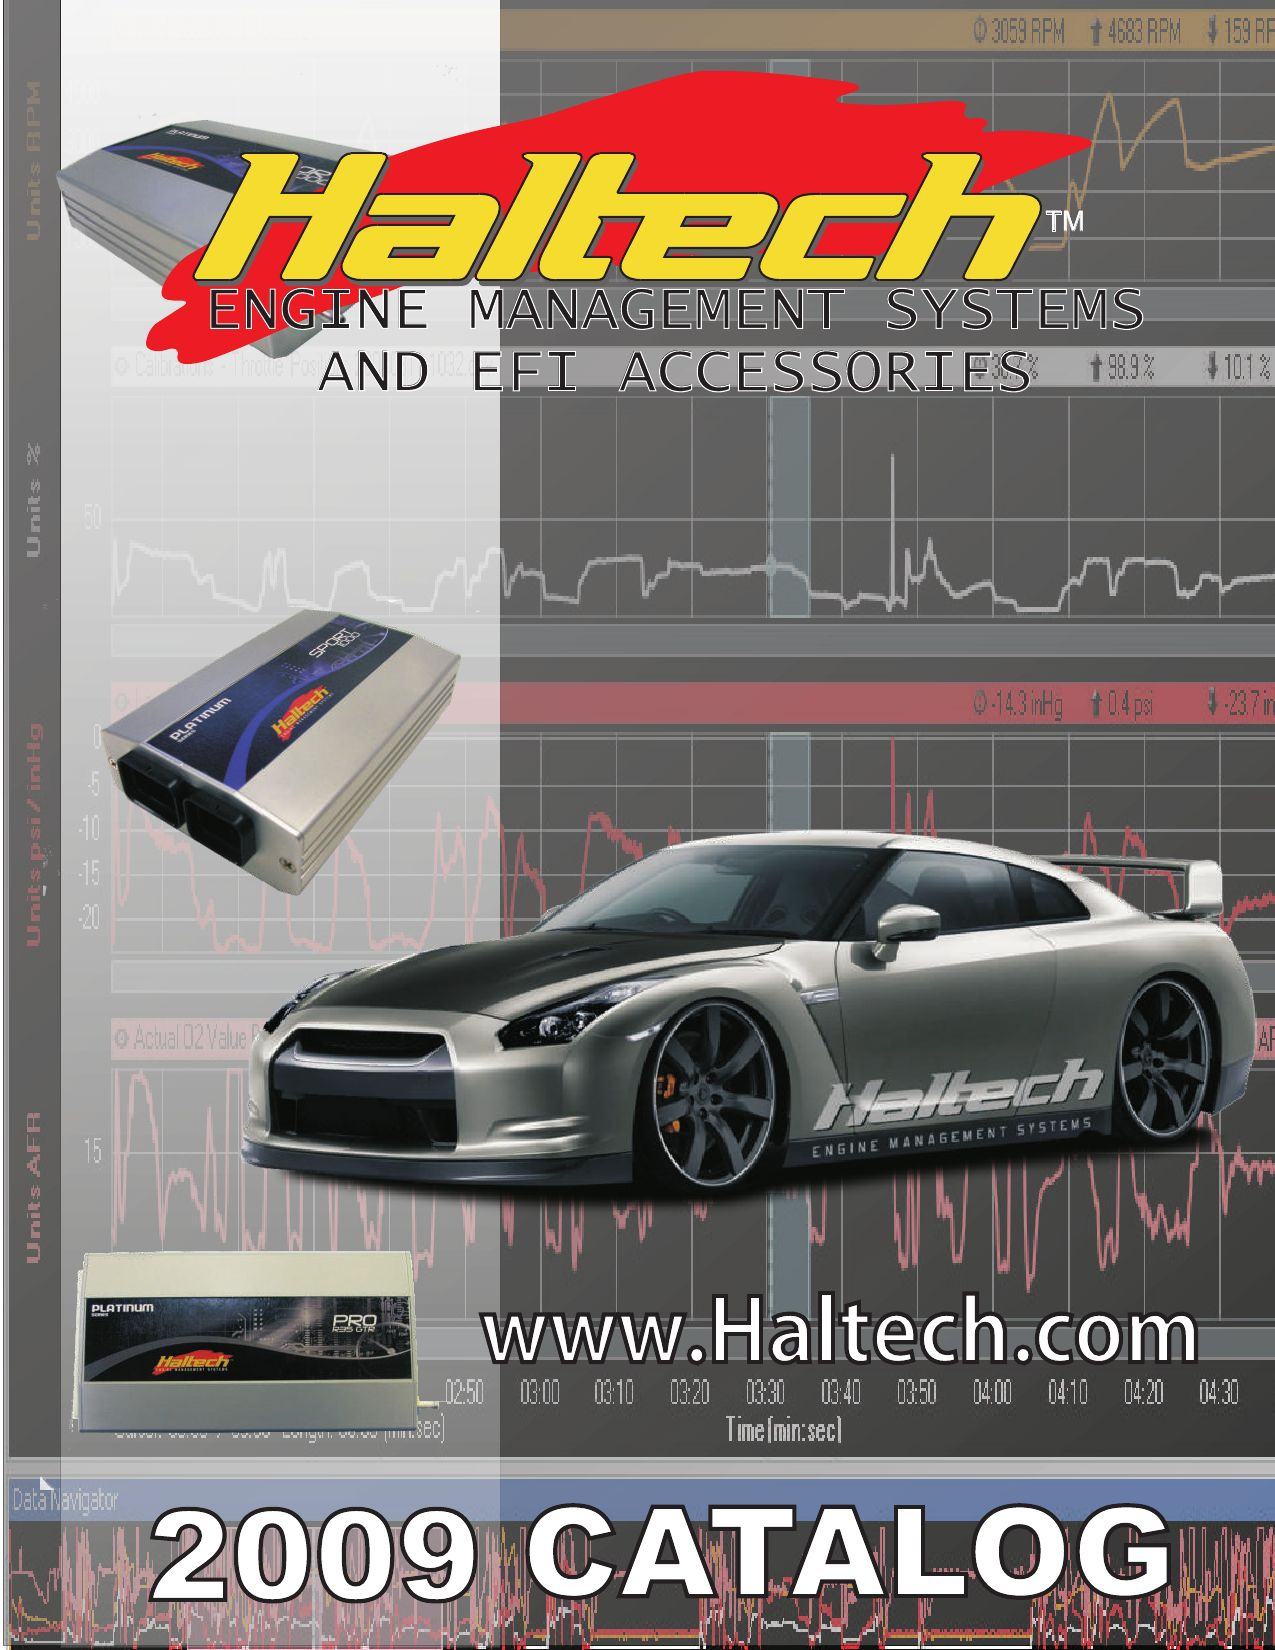 2009 Haltech Engine Management Systems Catalog by Mike Roberts - issuu